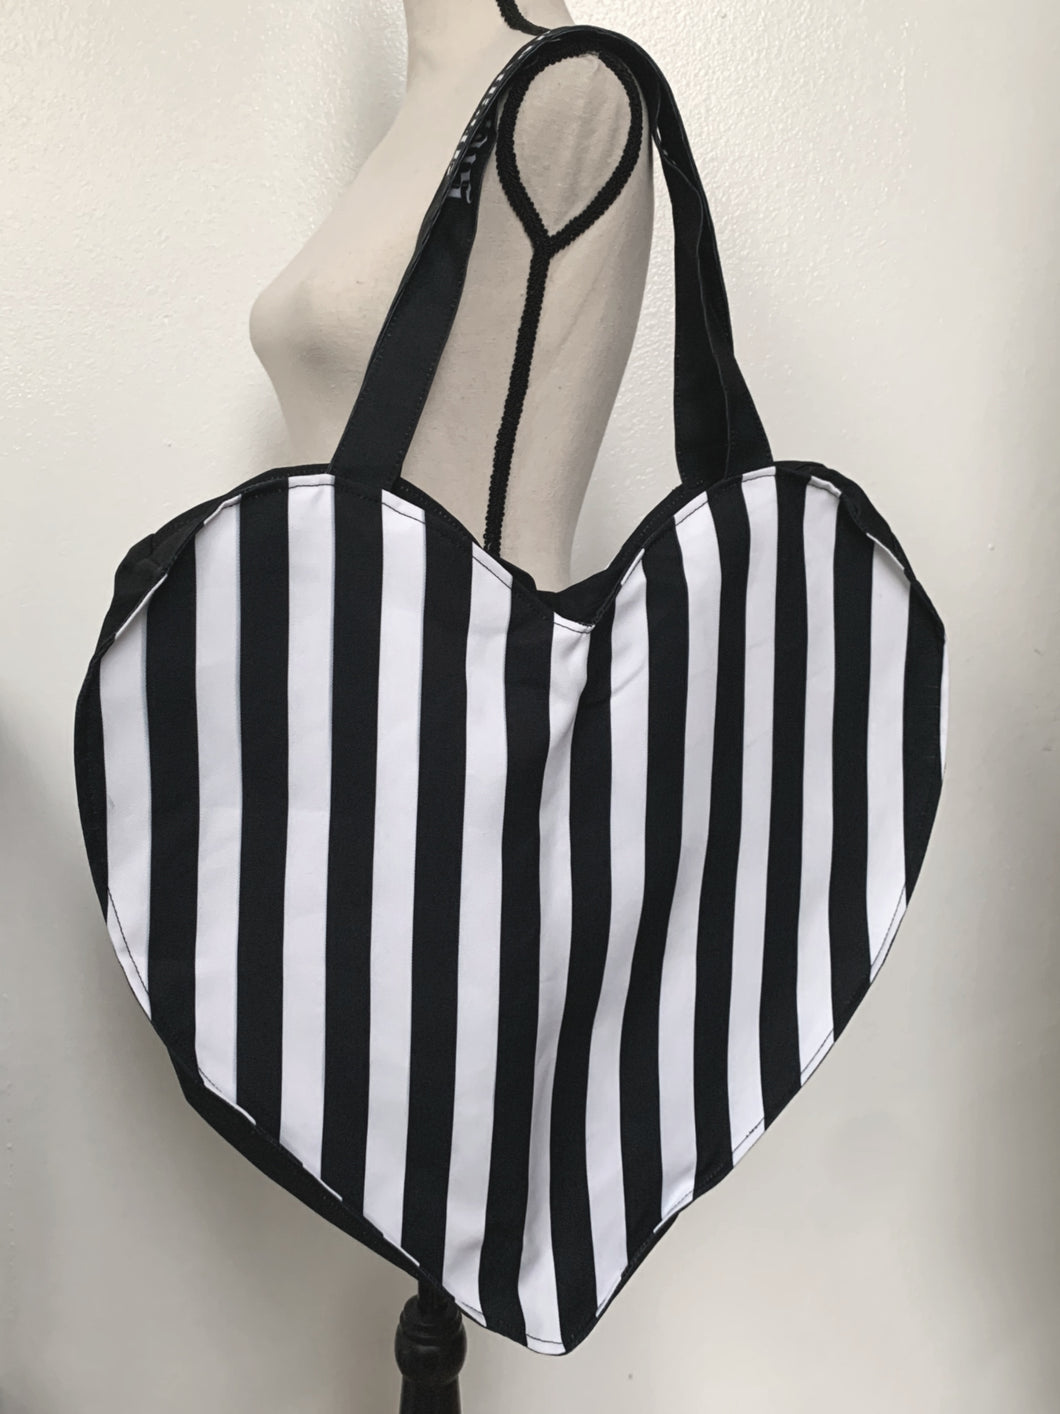 Lydia Heart Tote Bag